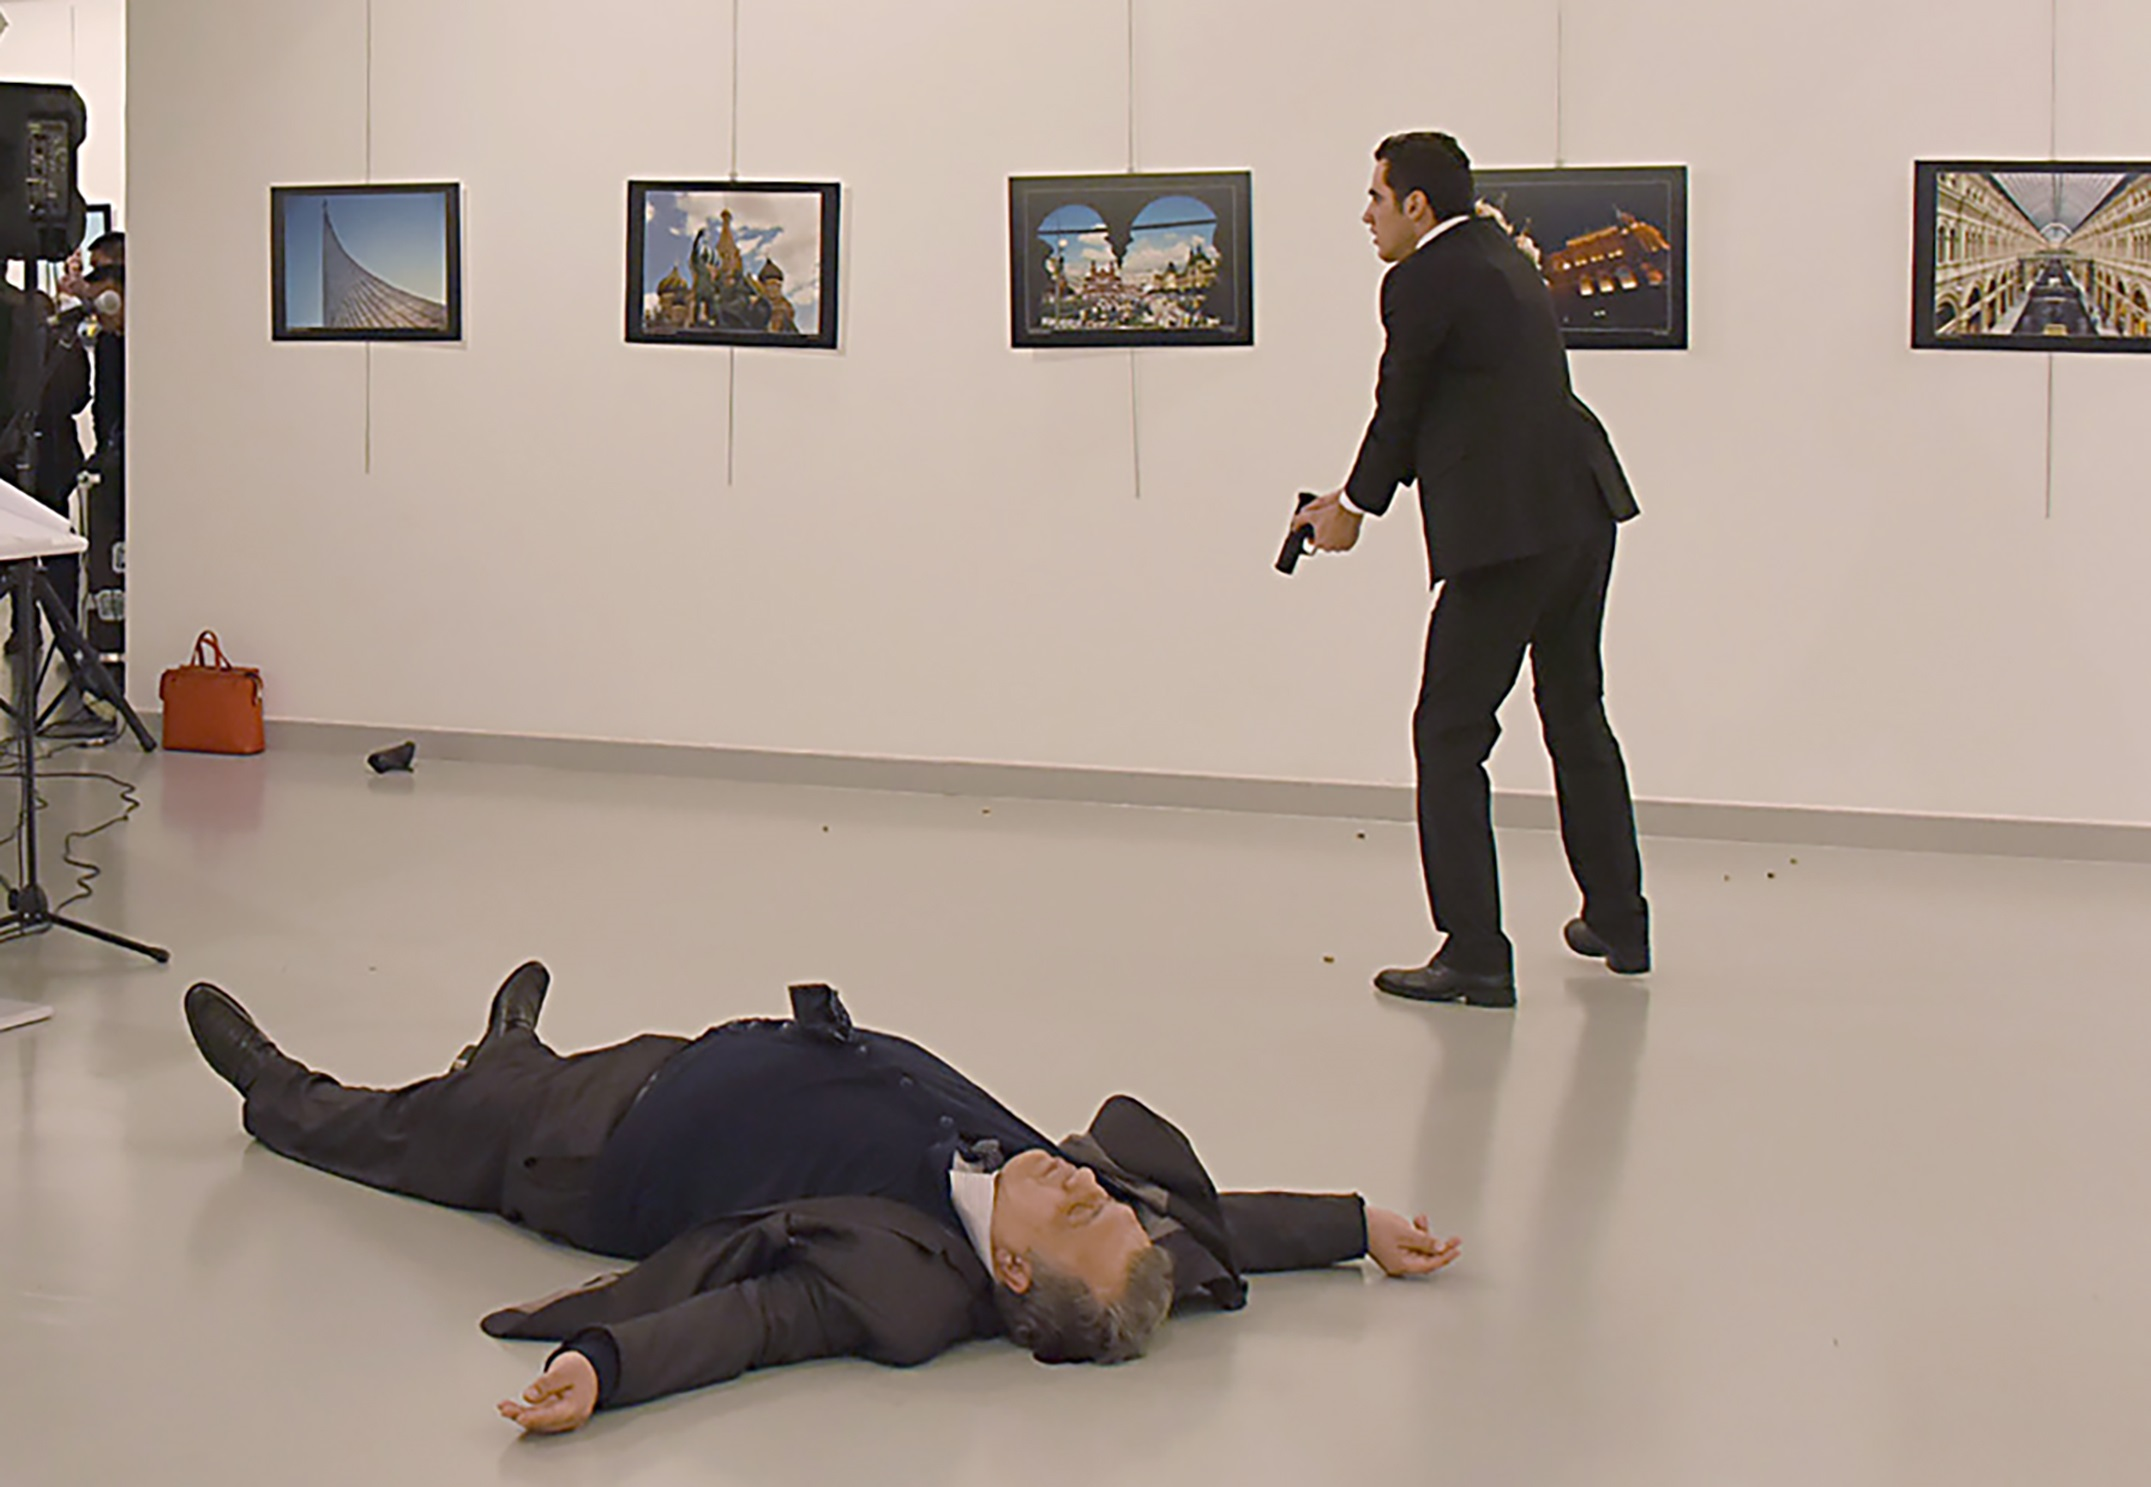 This picture taken on December 19, 2016 shows Andrey Karlov (L), the Russian ambassador to Ankara, lying on the floor after being shot by a gunman (R) during an attack during a public event in Ankara. A gunman crying «Aleppo» and «revenge» shot Karlov while he was visiting an art exhibition in Ankara on December 19, witnesses and media reports said. The Turkish state-run Anadolu news agency said the gunman had been «neutralised» in a police operation, without giving further details. / AFP PHOTO / Sozcu daily / Yavuz Alatan / Turkey OUT